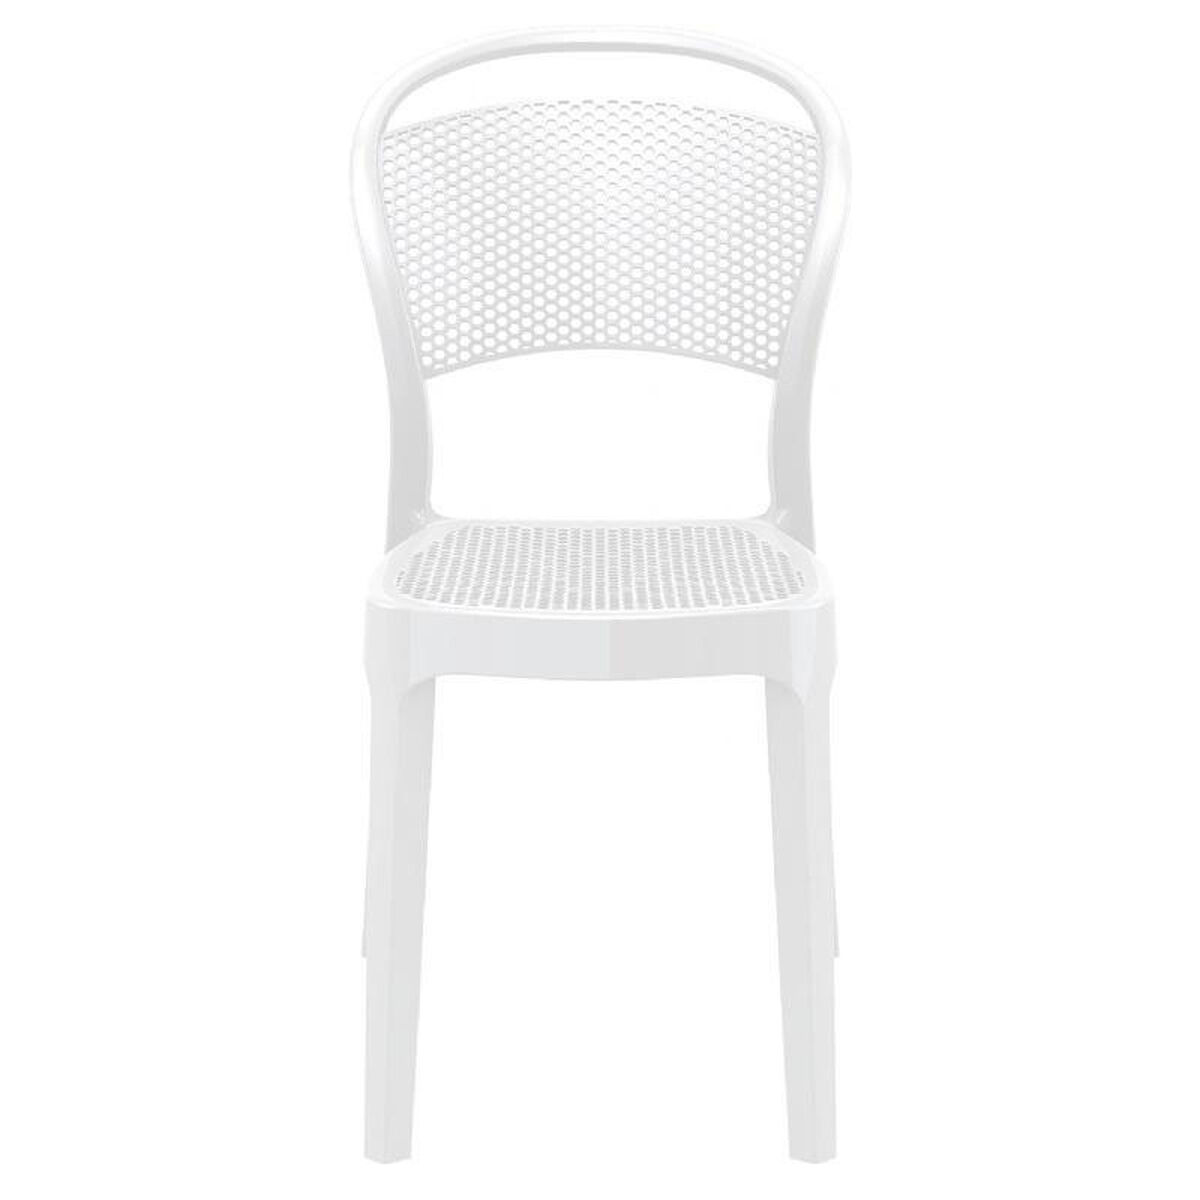 white stacking dining chair isp021 gwhi. Black Bedroom Furniture Sets. Home Design Ideas